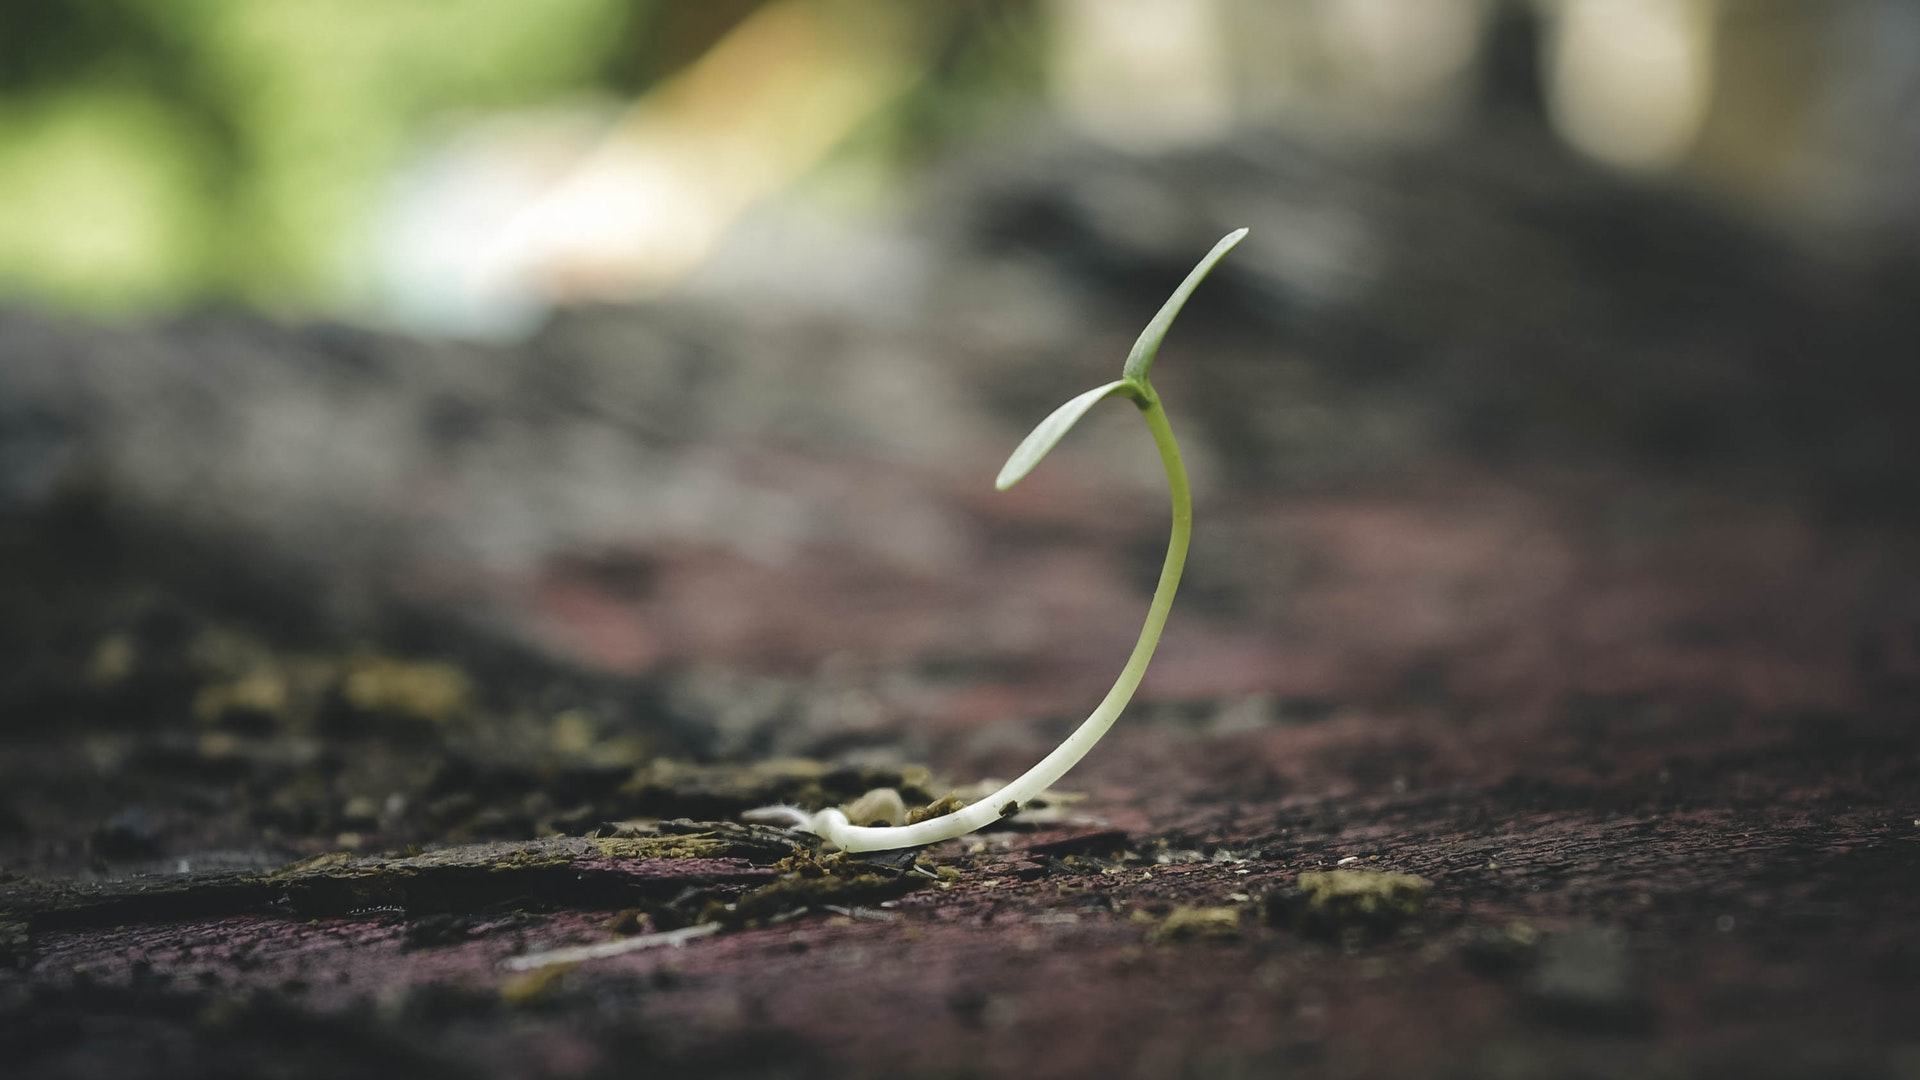 A germinating seedling